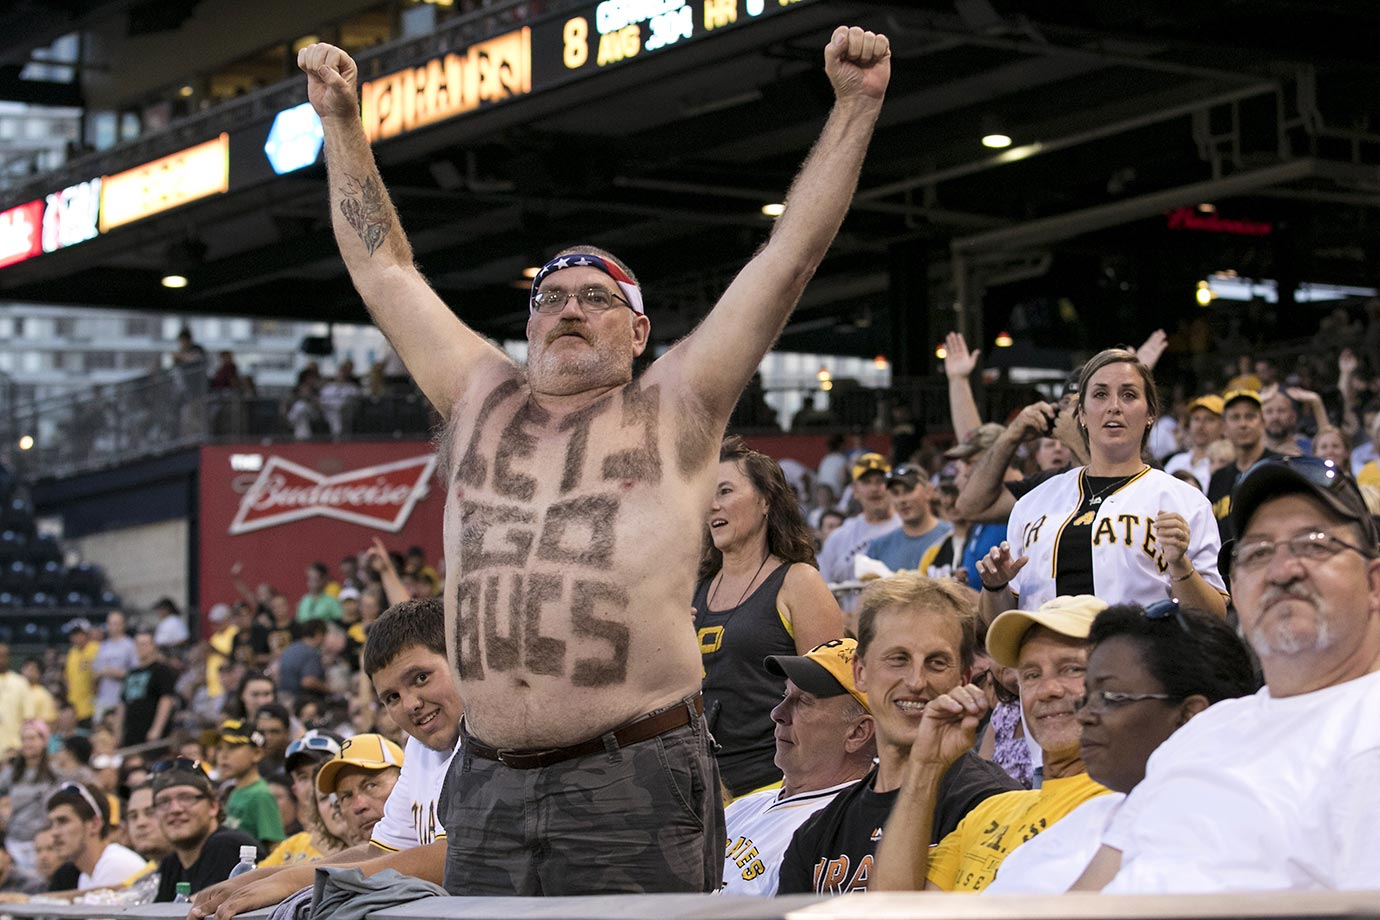 A Pirates fan during a game against the Arizona Diamondbacks.